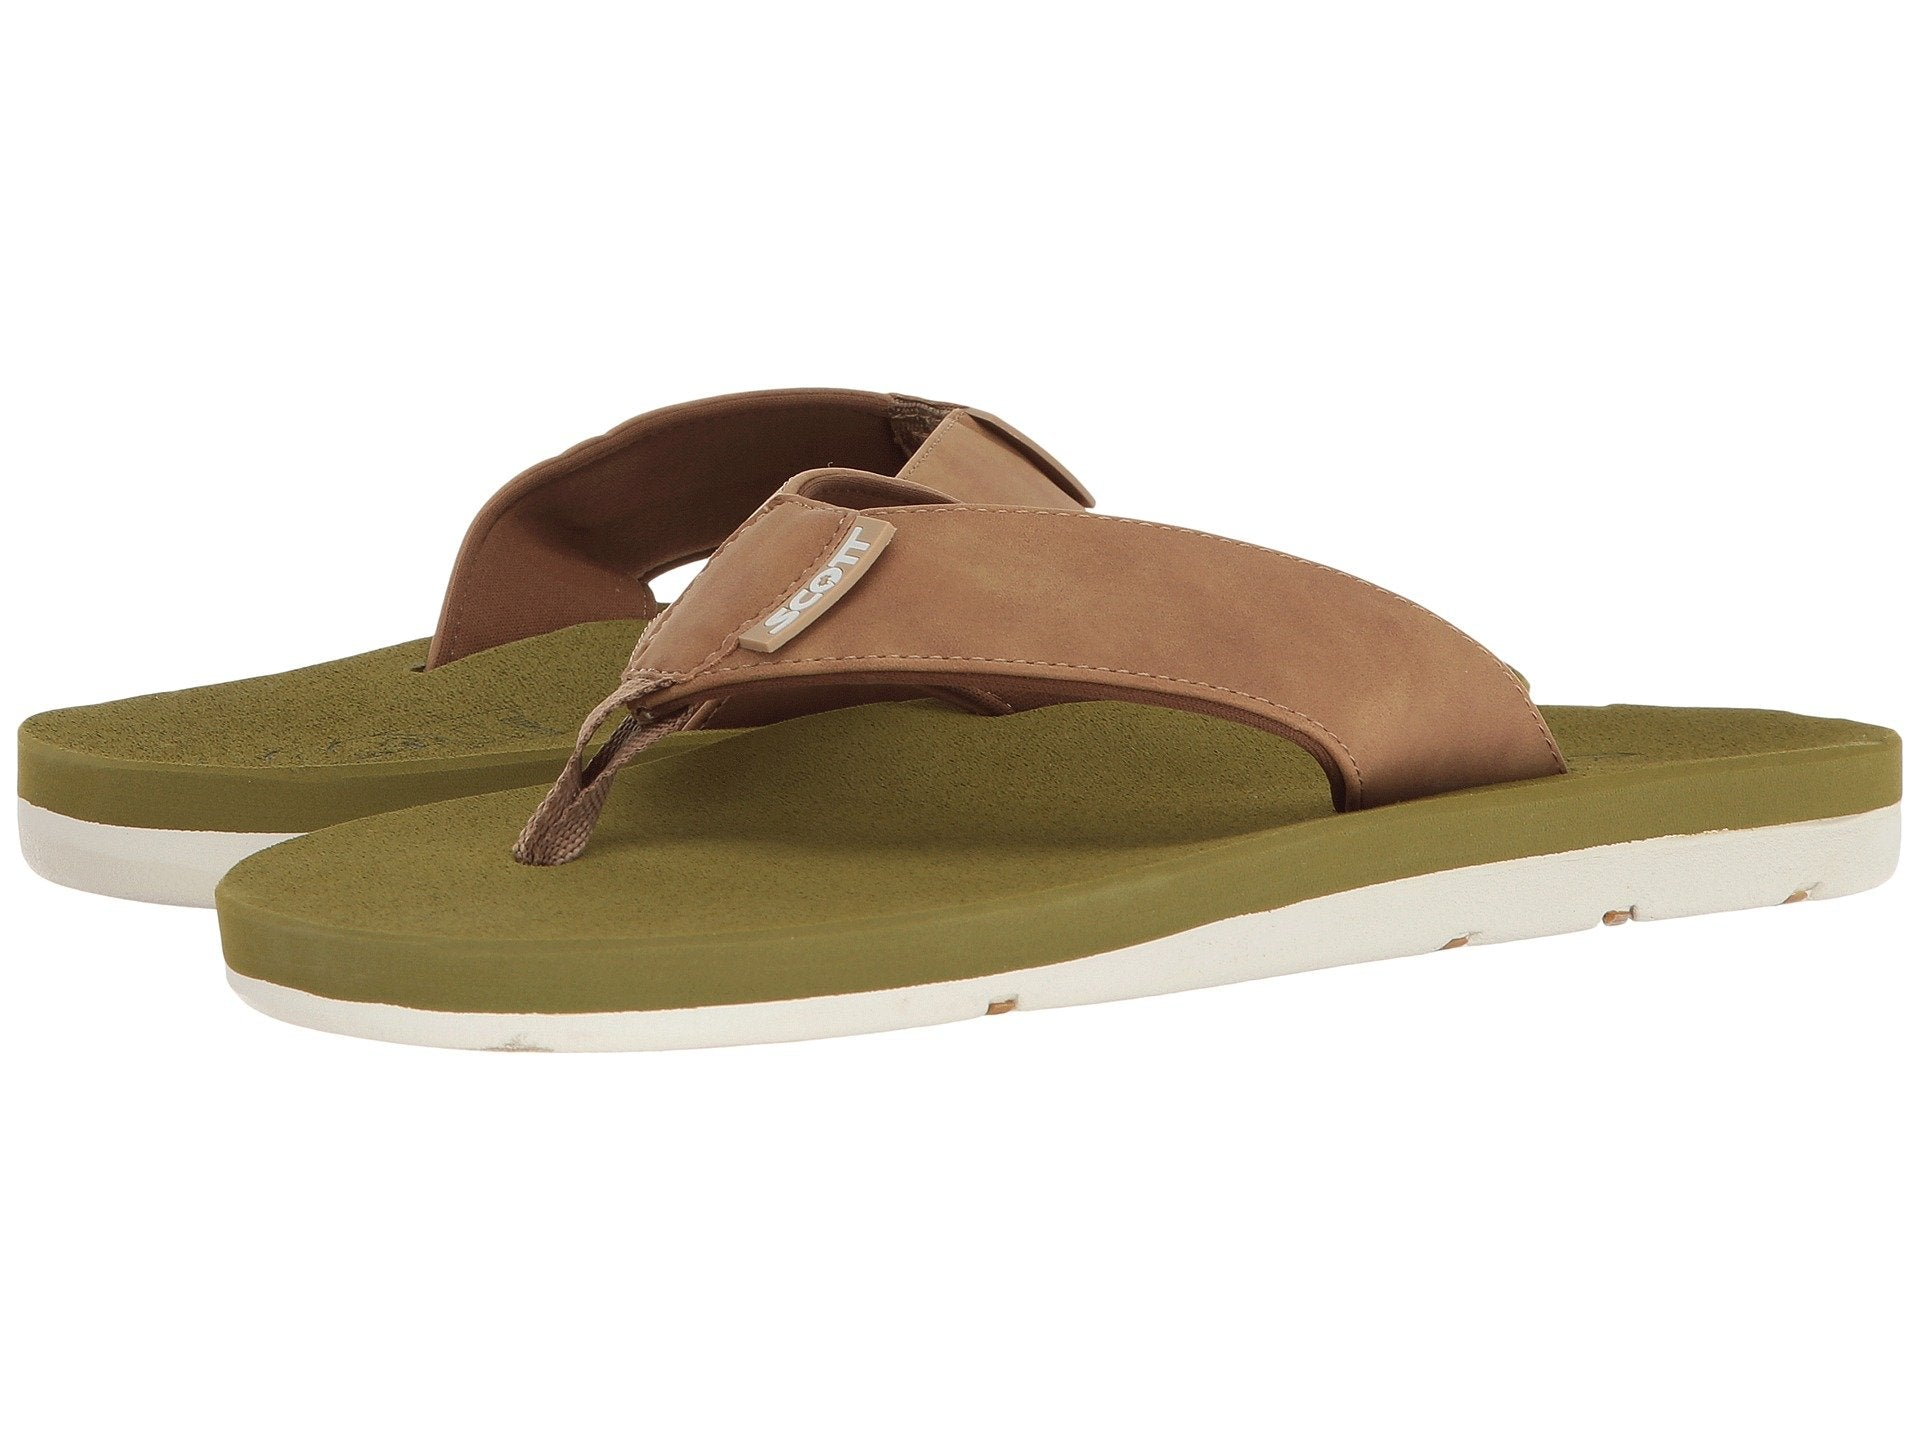 Scott Hawaii Kapena Vegan Sandals | Green Tan Neoprene Lined - AlohaShoes.com